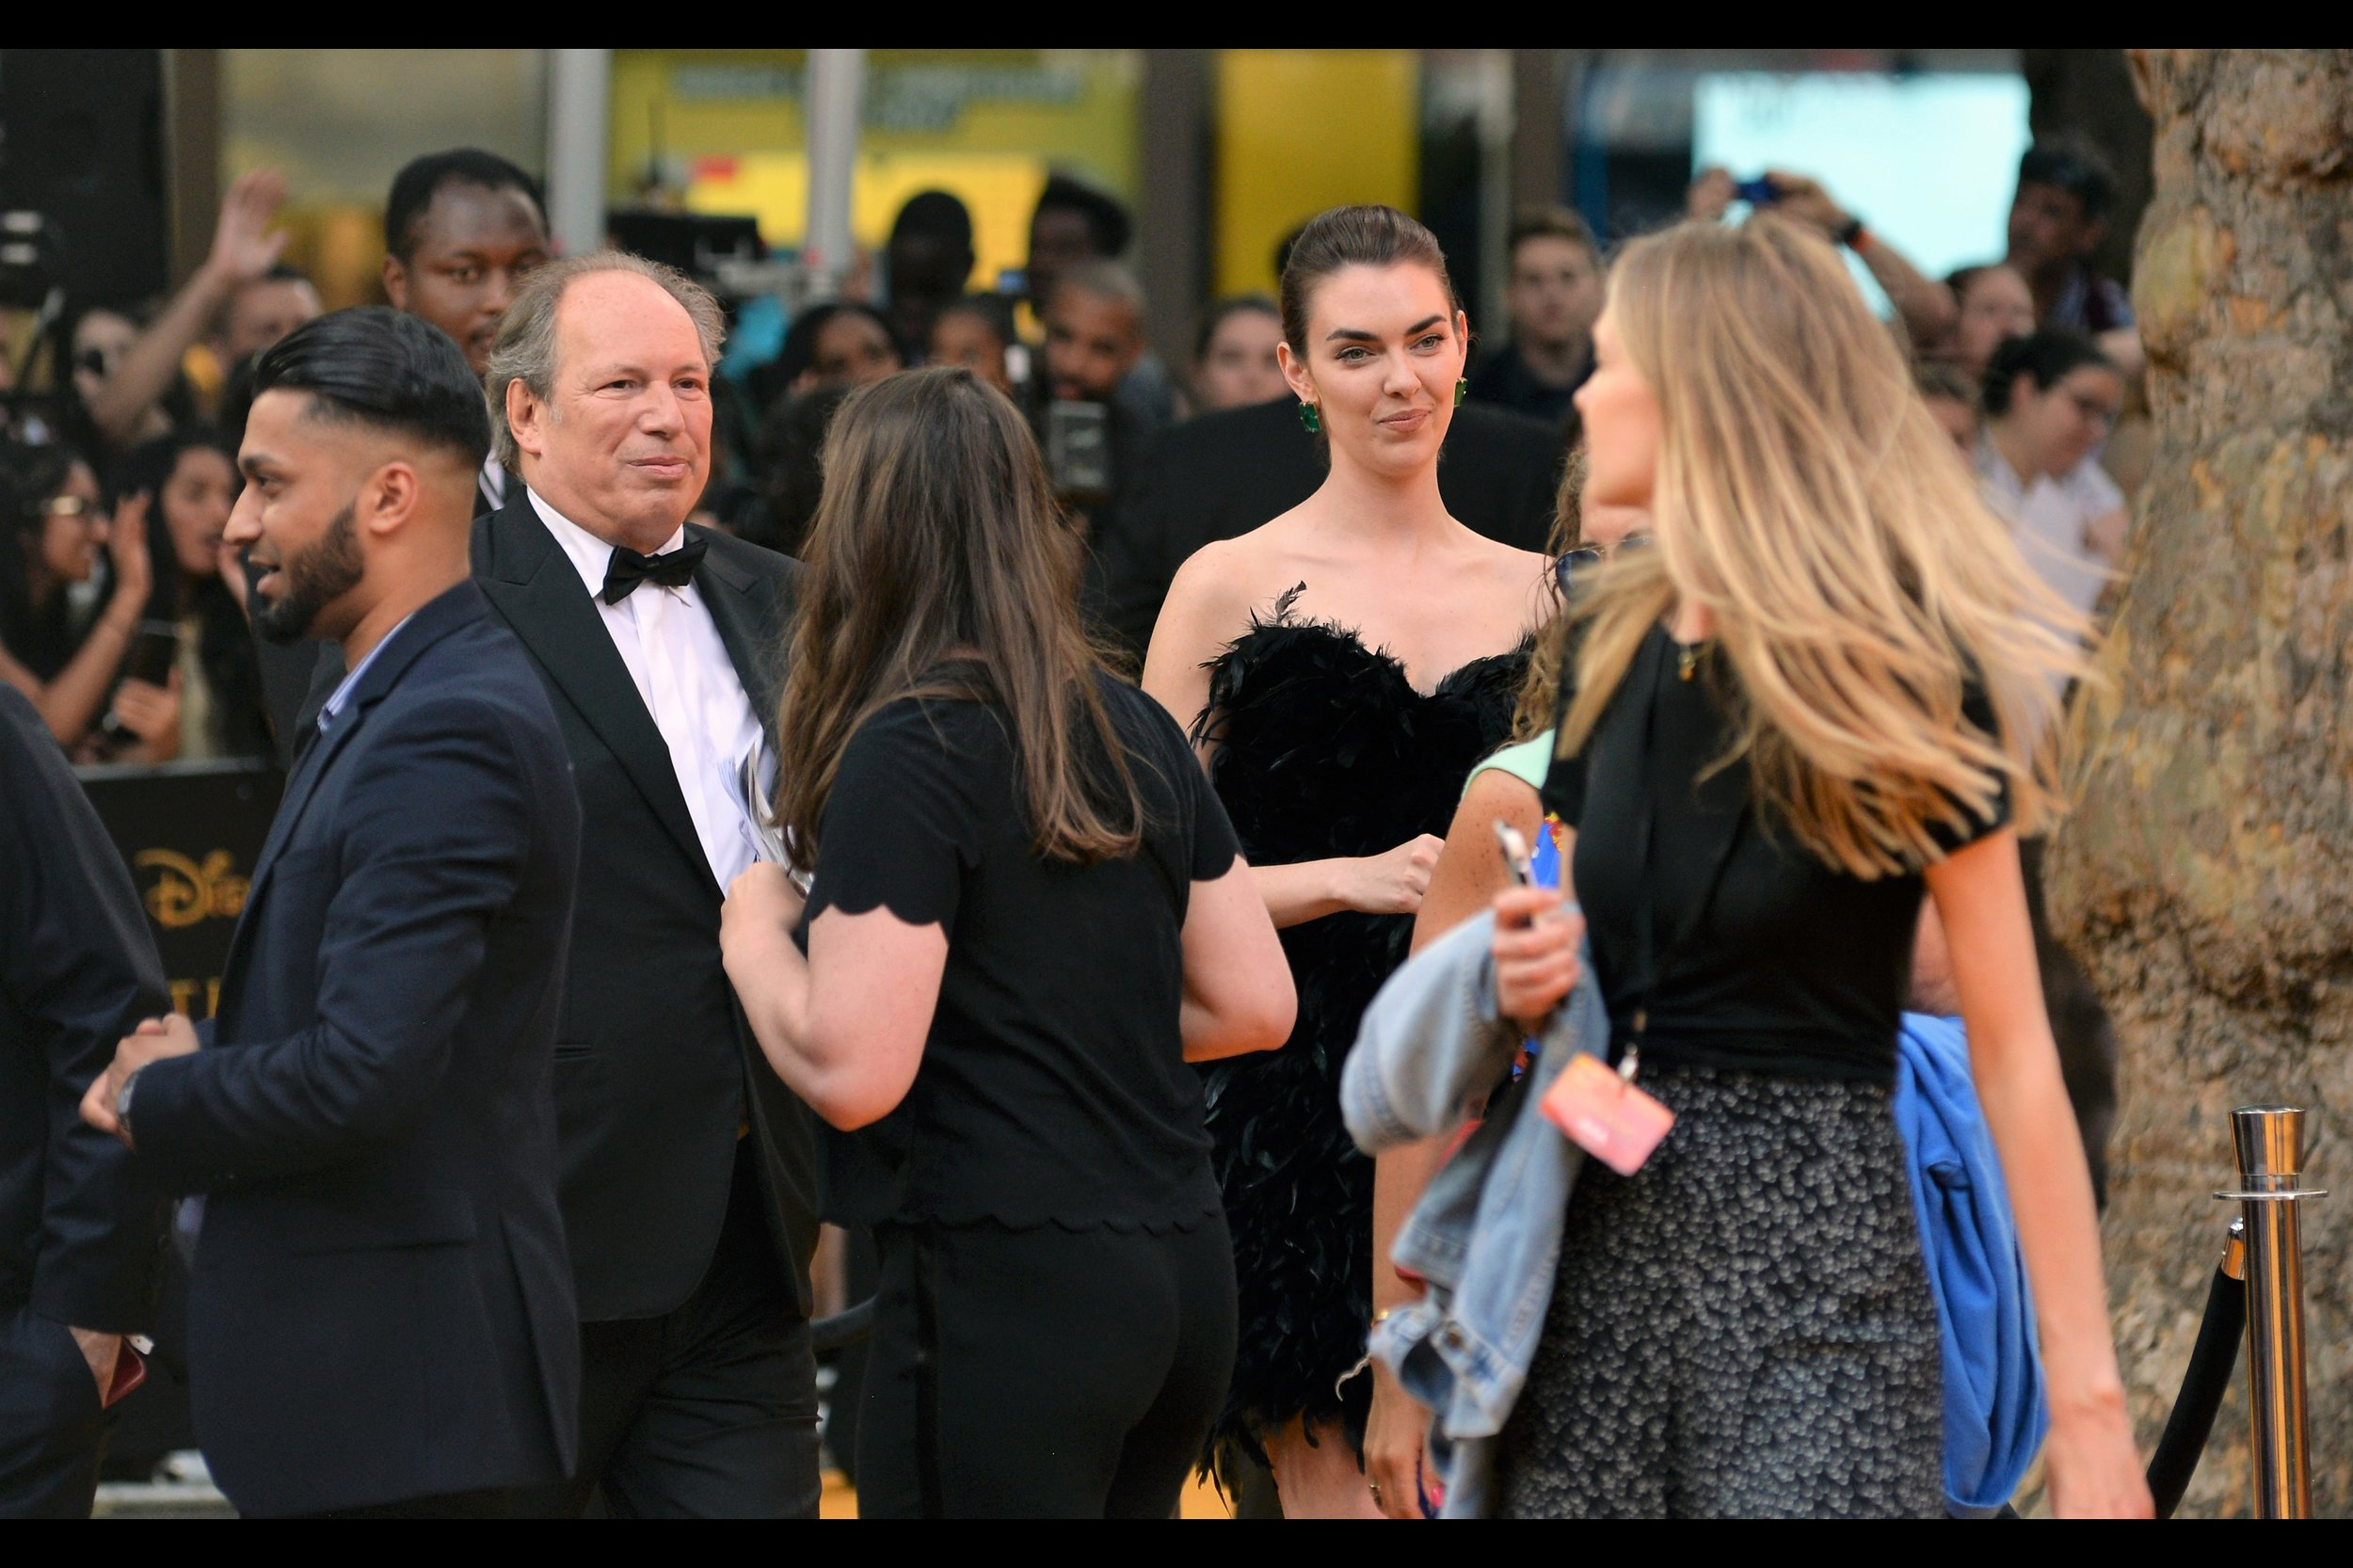 At left : it's Hans Zimmer!! He's won an Oscar (appropriately for 'The Lion King' (1994)') and been nominated another TEN times. I've previously photographed him at such premieres as    Man of Steel   ,    Rush   , and    Batman v Superman   …    The Dark Knight Rises   … and so on.